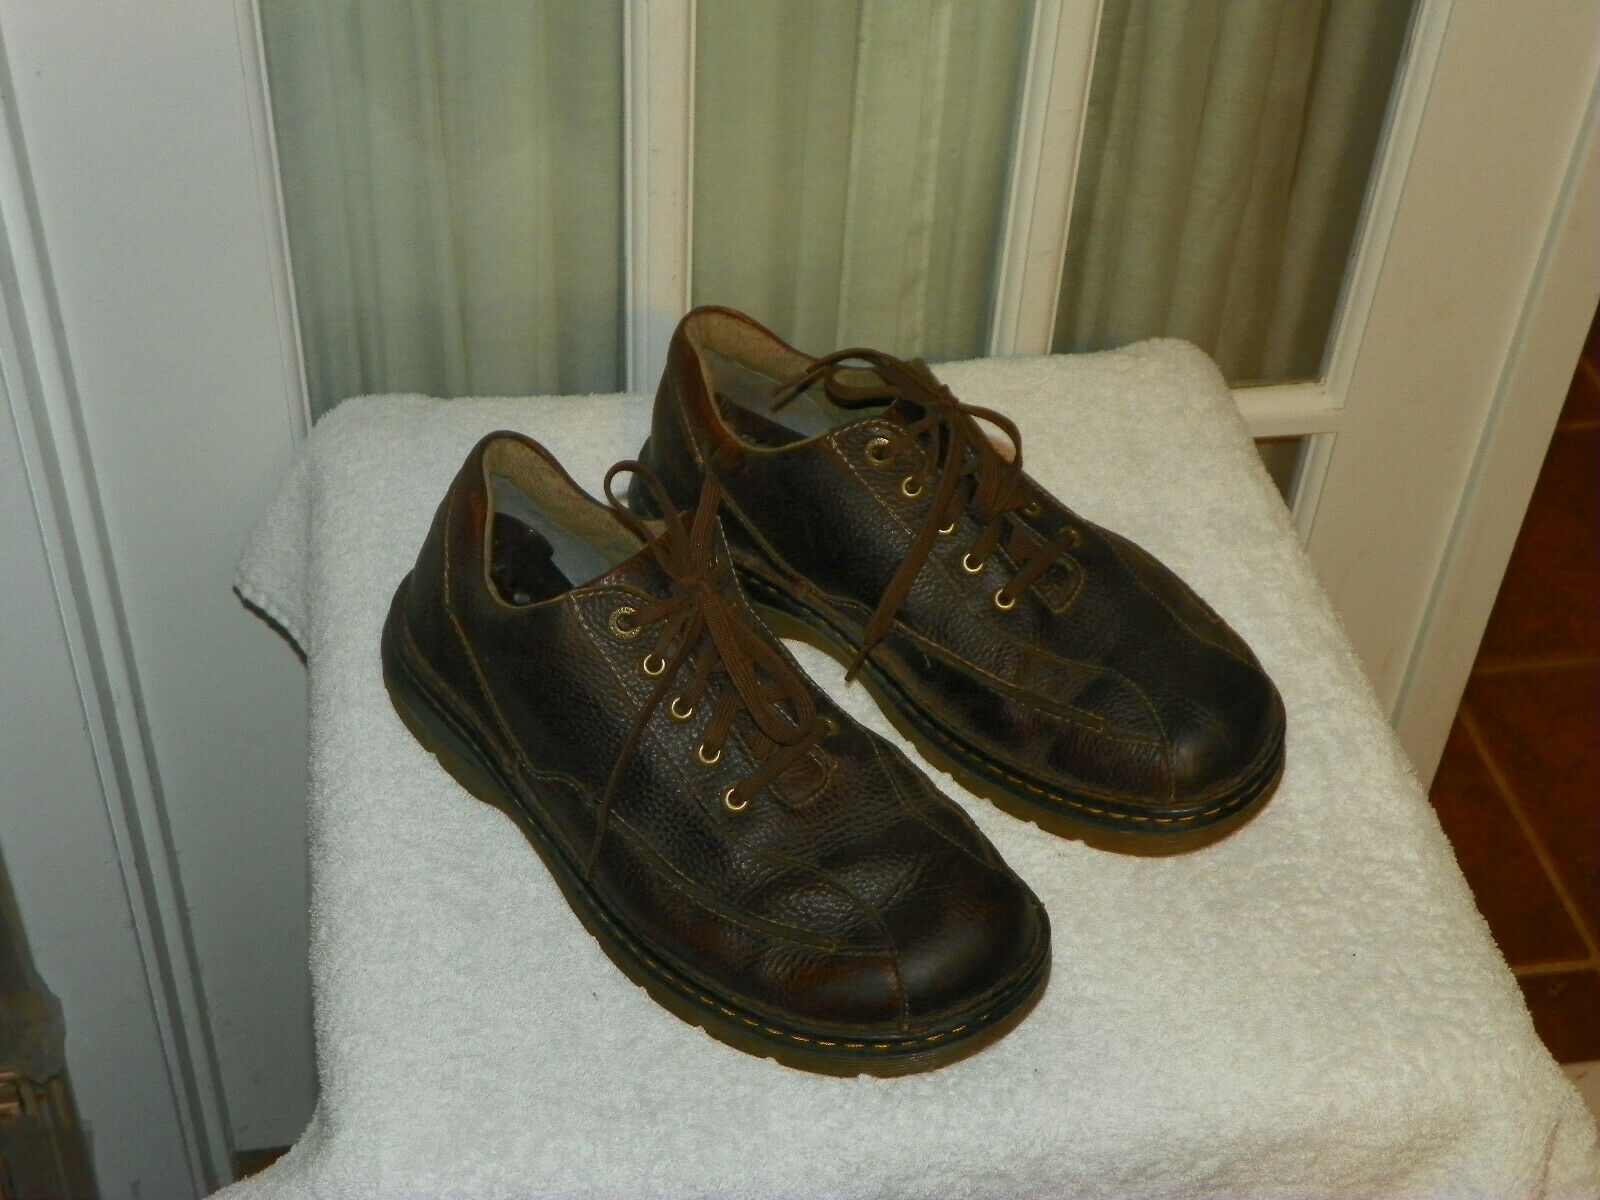 Dr Doc Martens Brown Leather Lace Oxford shoes Mens size US 11 Style 11200